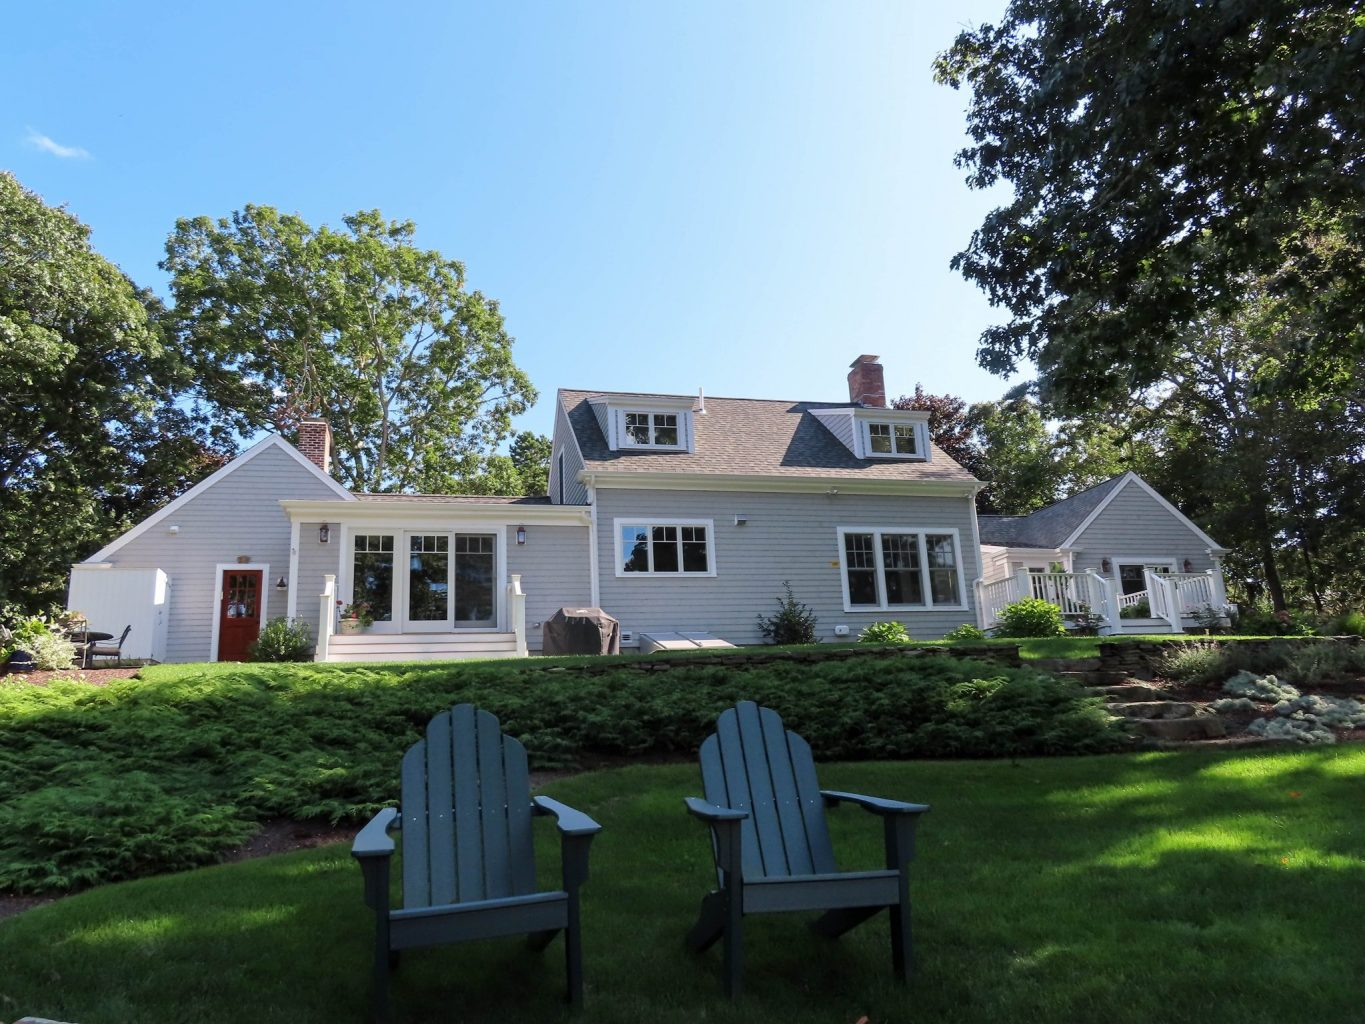 Back yard of a sprawling home with 2 adirondack chairs